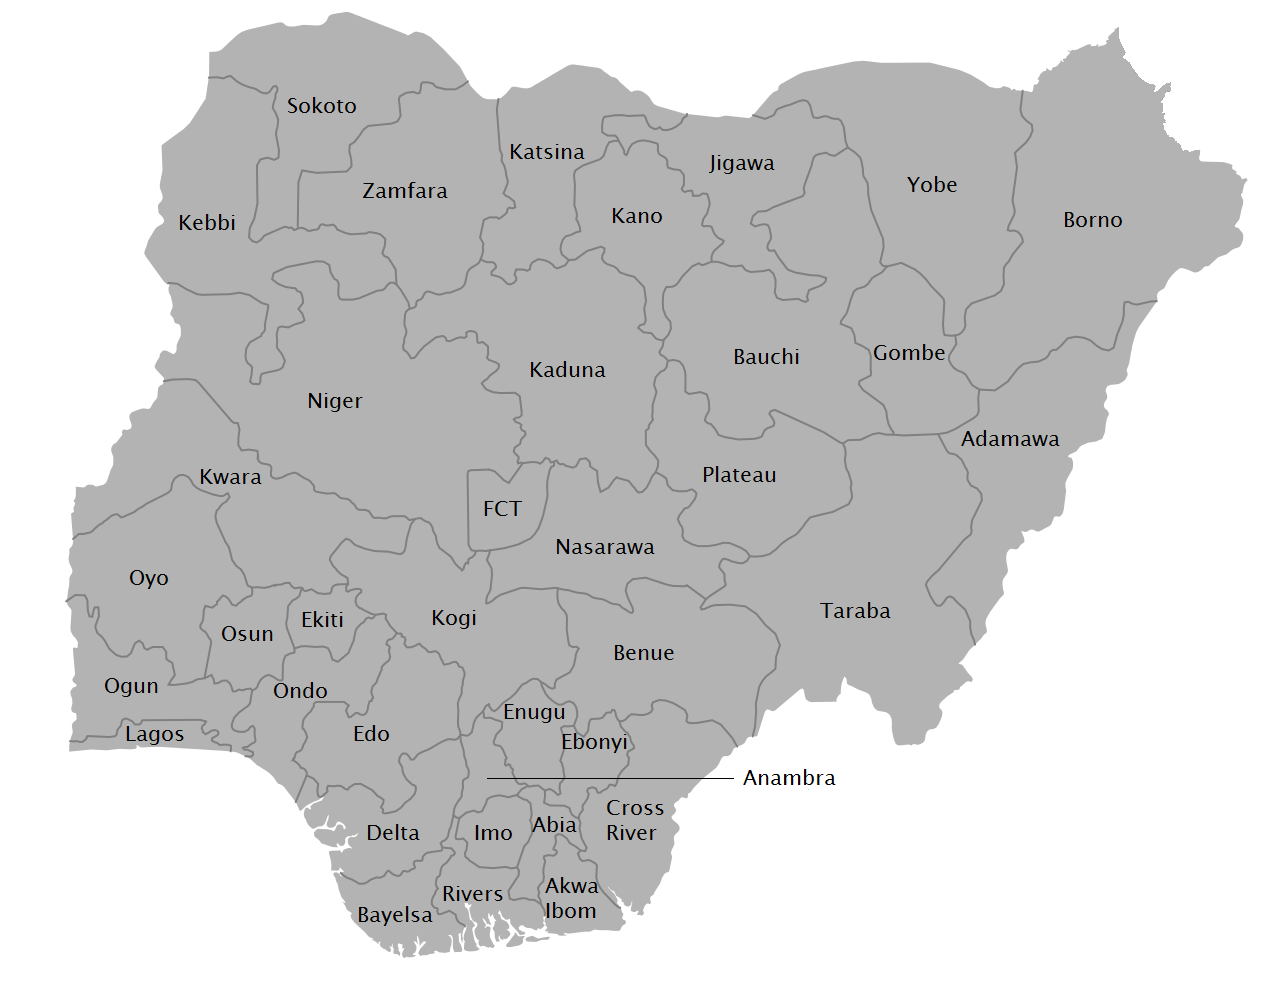 File:Map of Nigerian States with names.png - Wikipedia